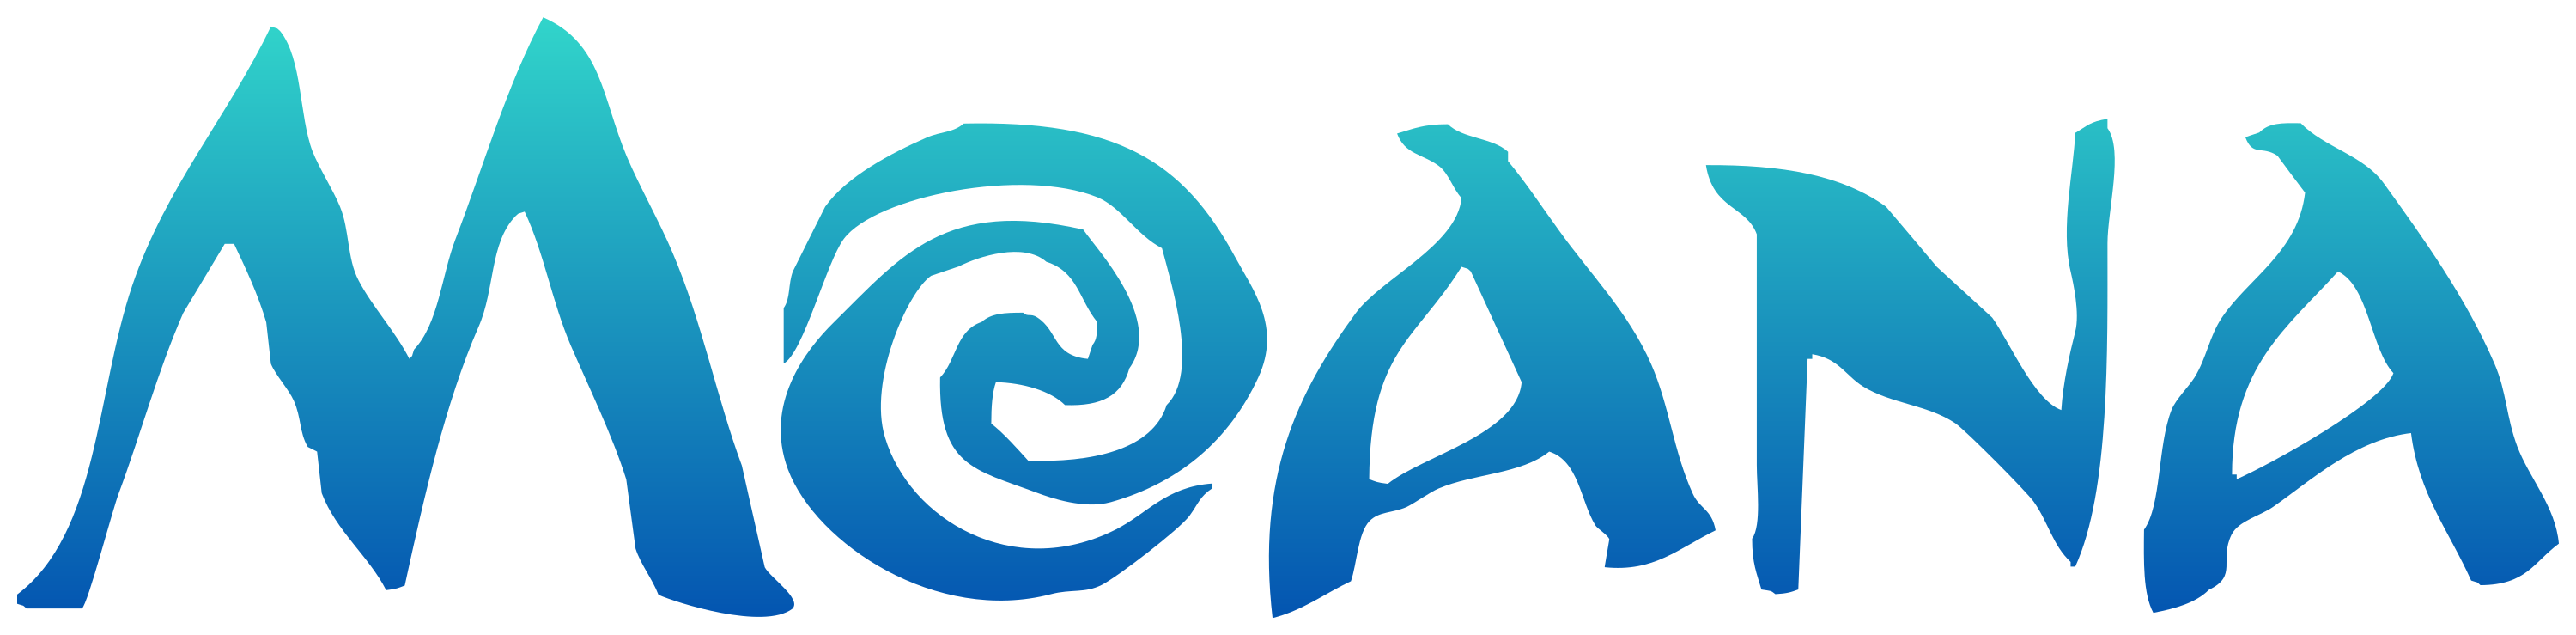 Moana logo png. Transparent pictures free icons